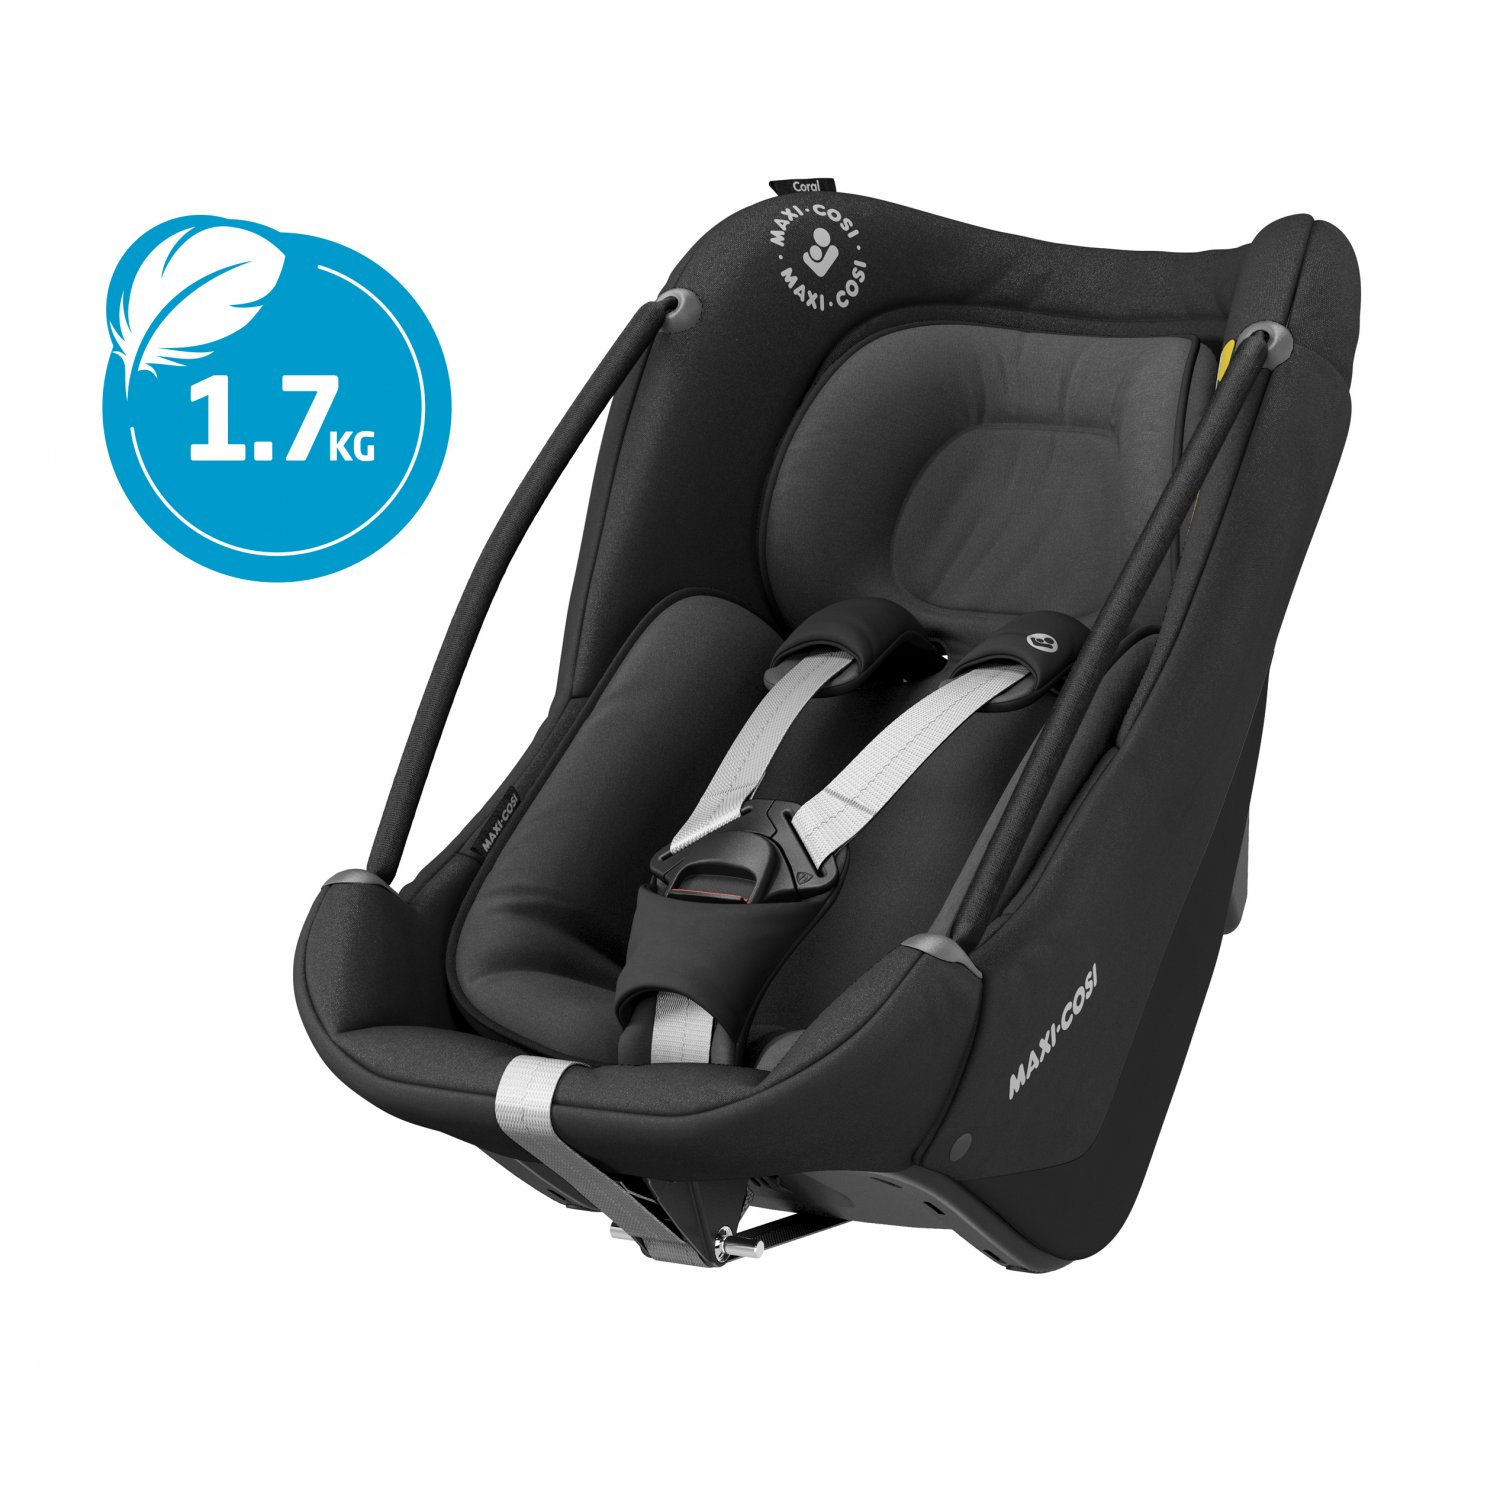 Maxi Cosi Child Seat Instructions Maxi Cosi Coral Modular Baby Car Seat Essential Black